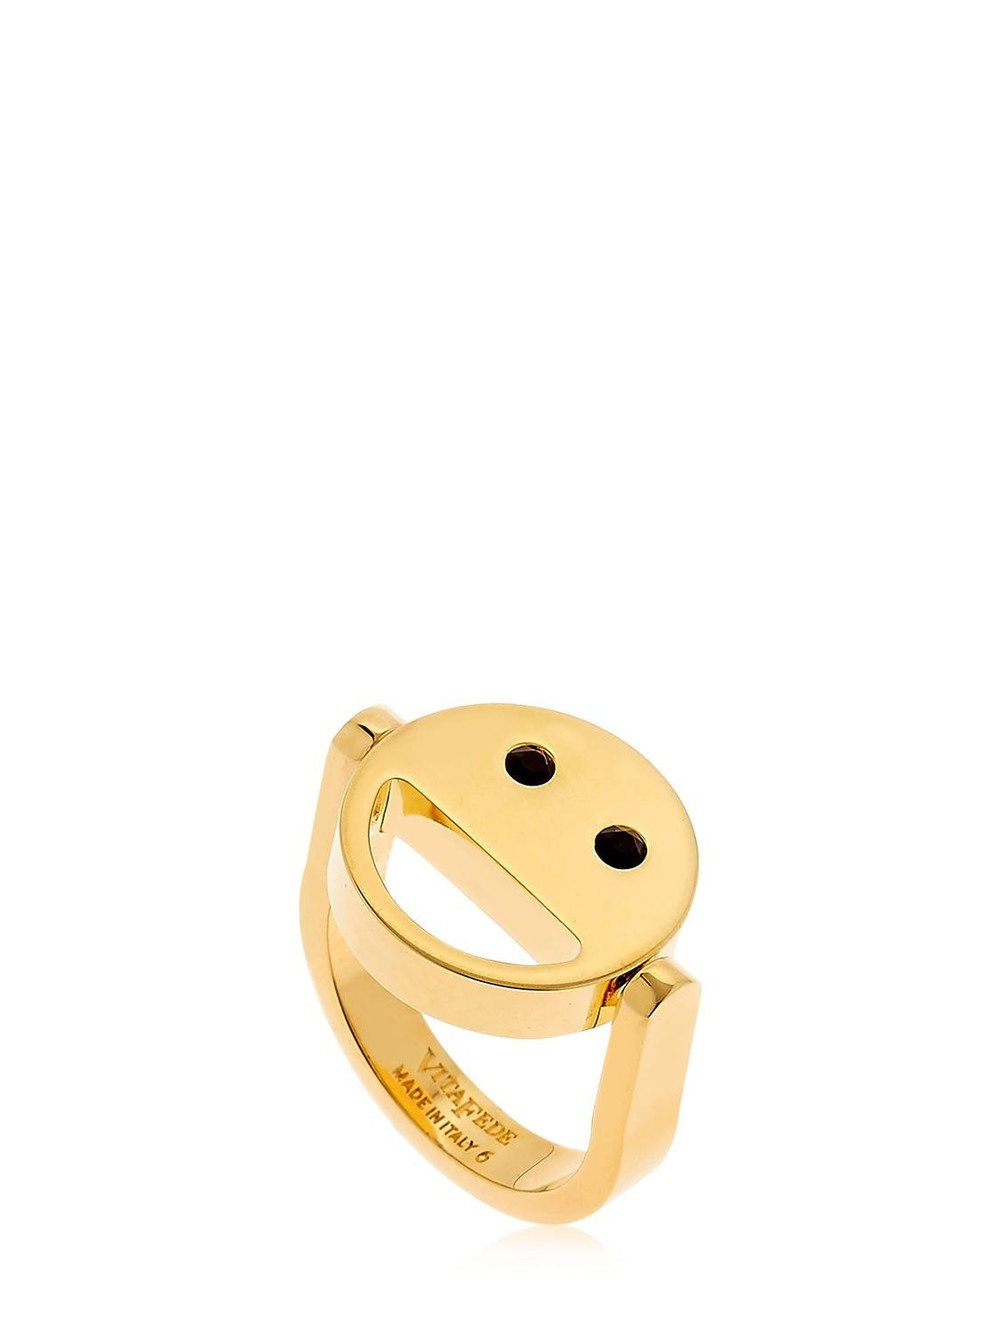 VITA FEDE Sorriso Ring in gold